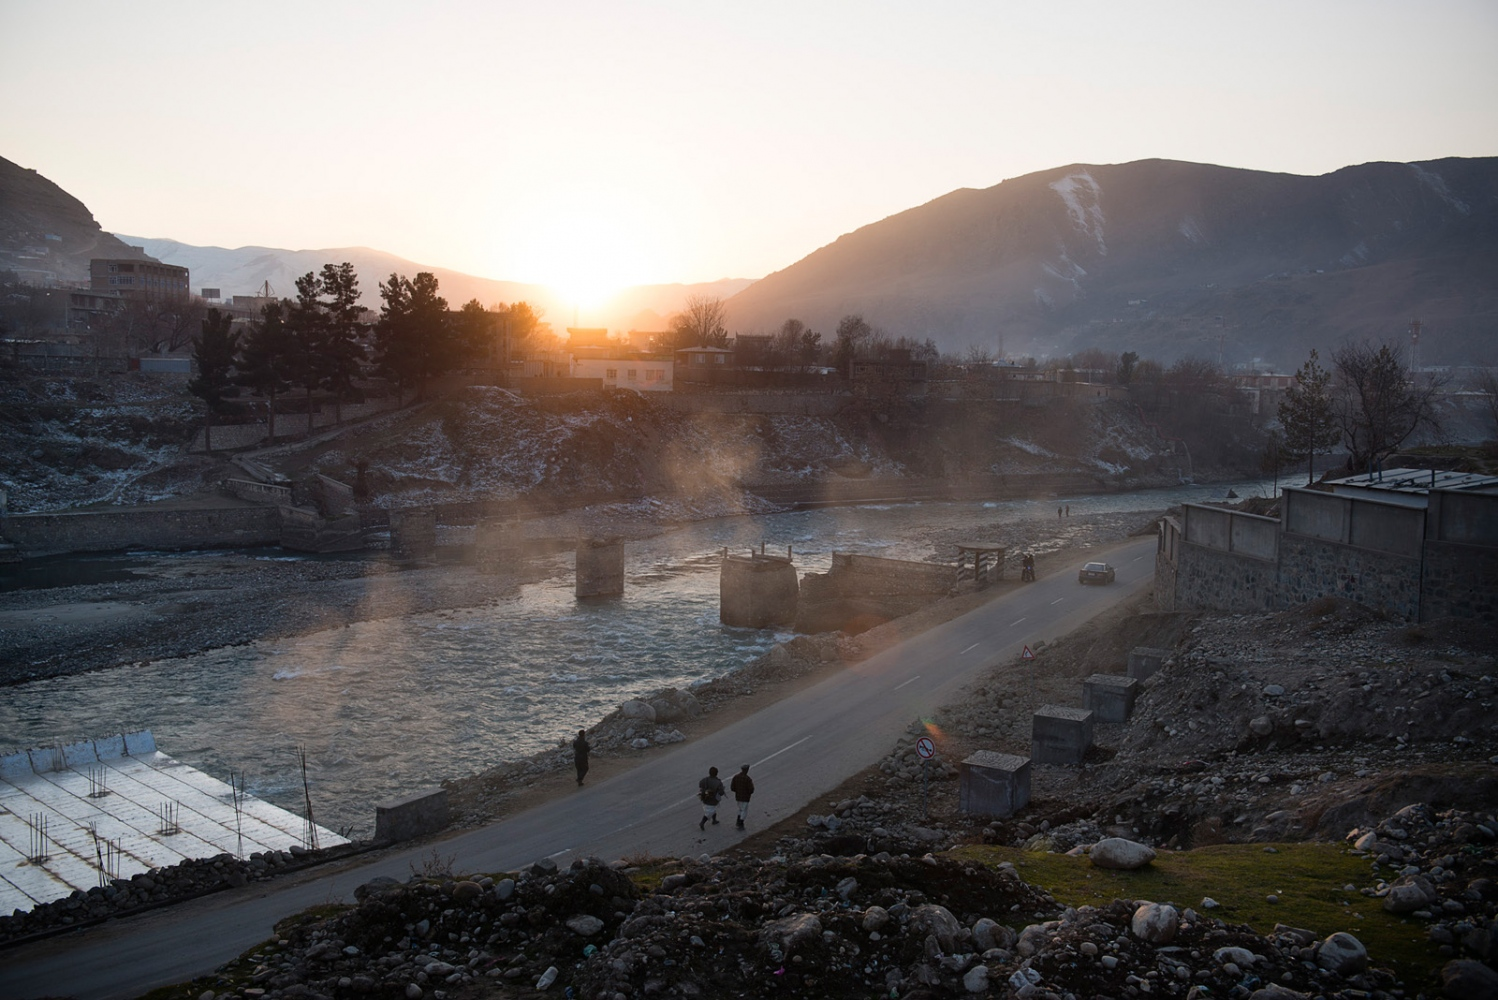 FAIZABAD, AFGHANISTAN | 2014-12-14 | An over view of Kookcha river in the town of Faizabad, just before the sun sets.